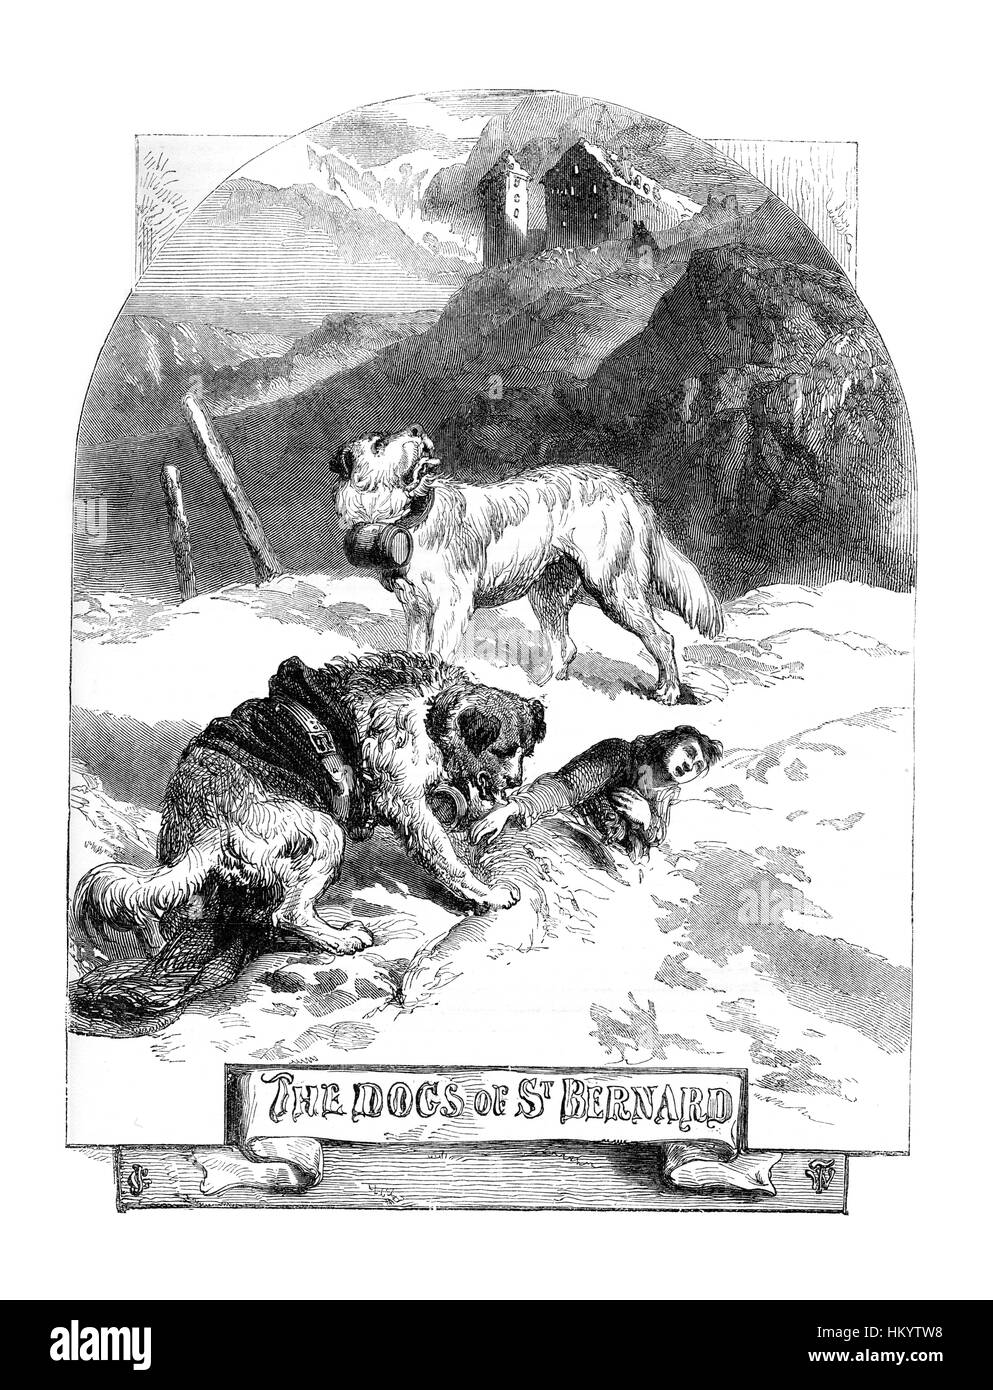 St. Bernard Dog. 19th century Engraving from 'Popular Natural History' published in 1866. - Stock Image